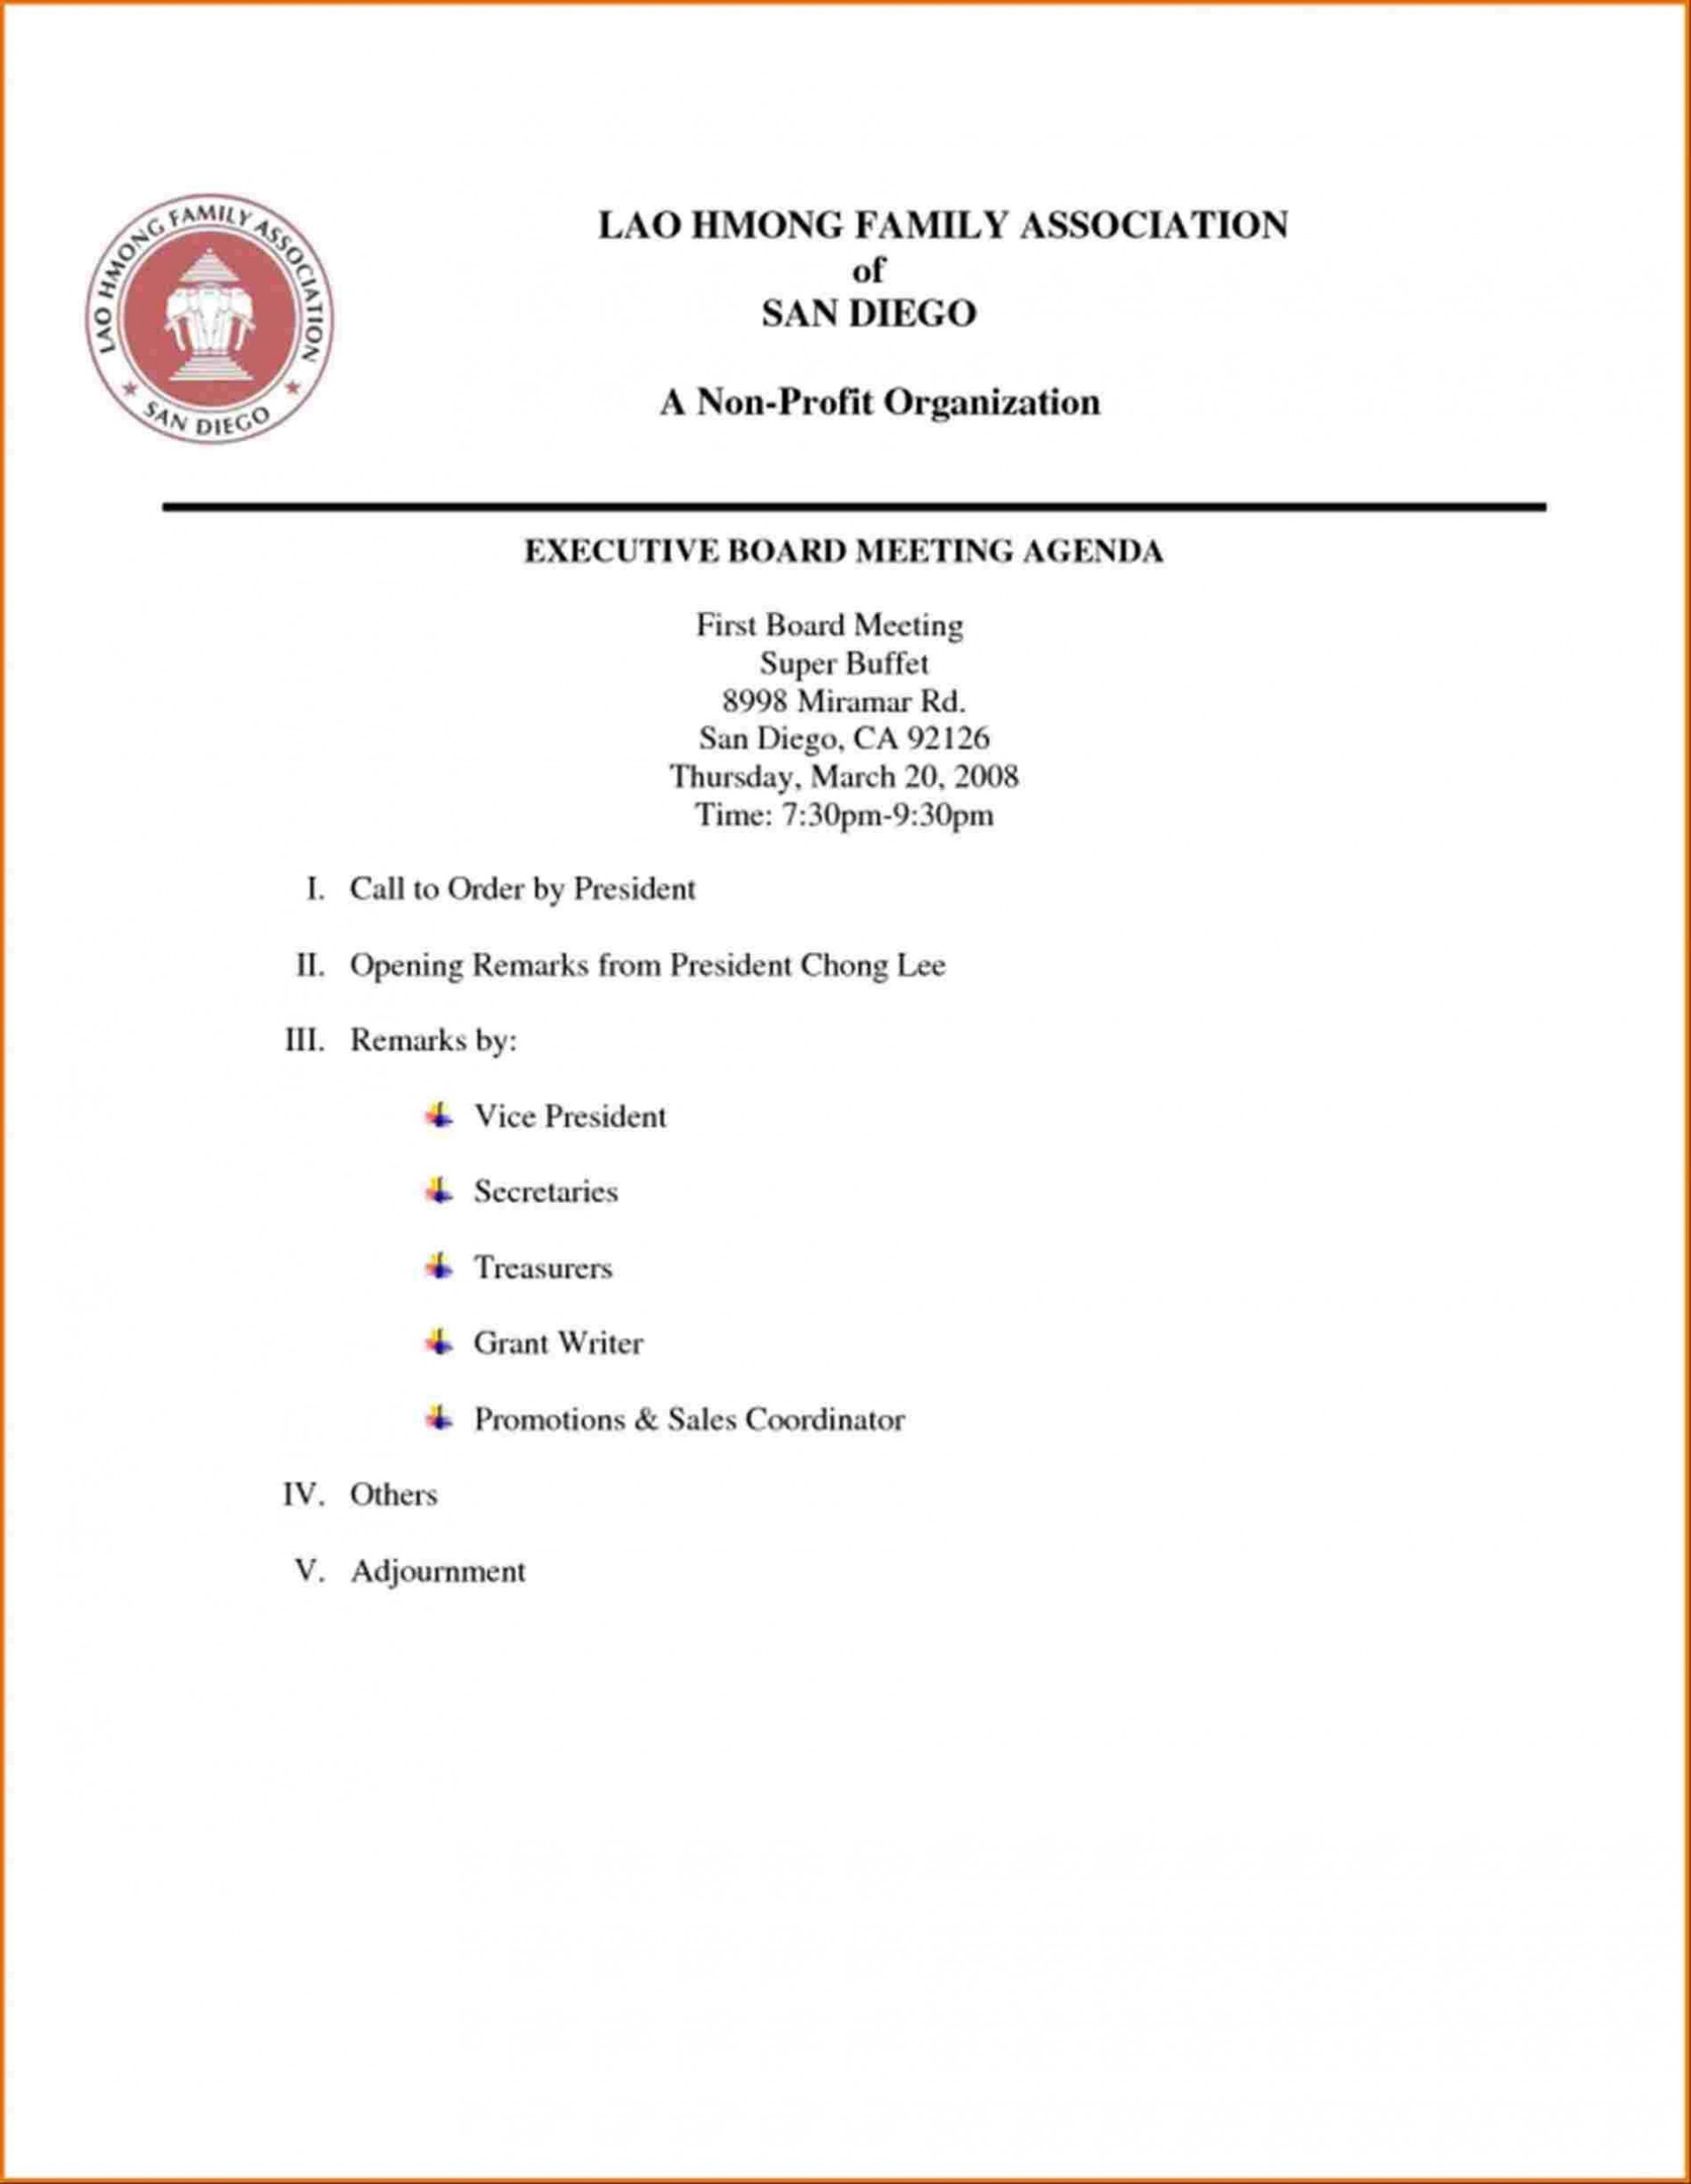 000 Marvelou Board Meeting Agenda Template Example  India Australia Format1920